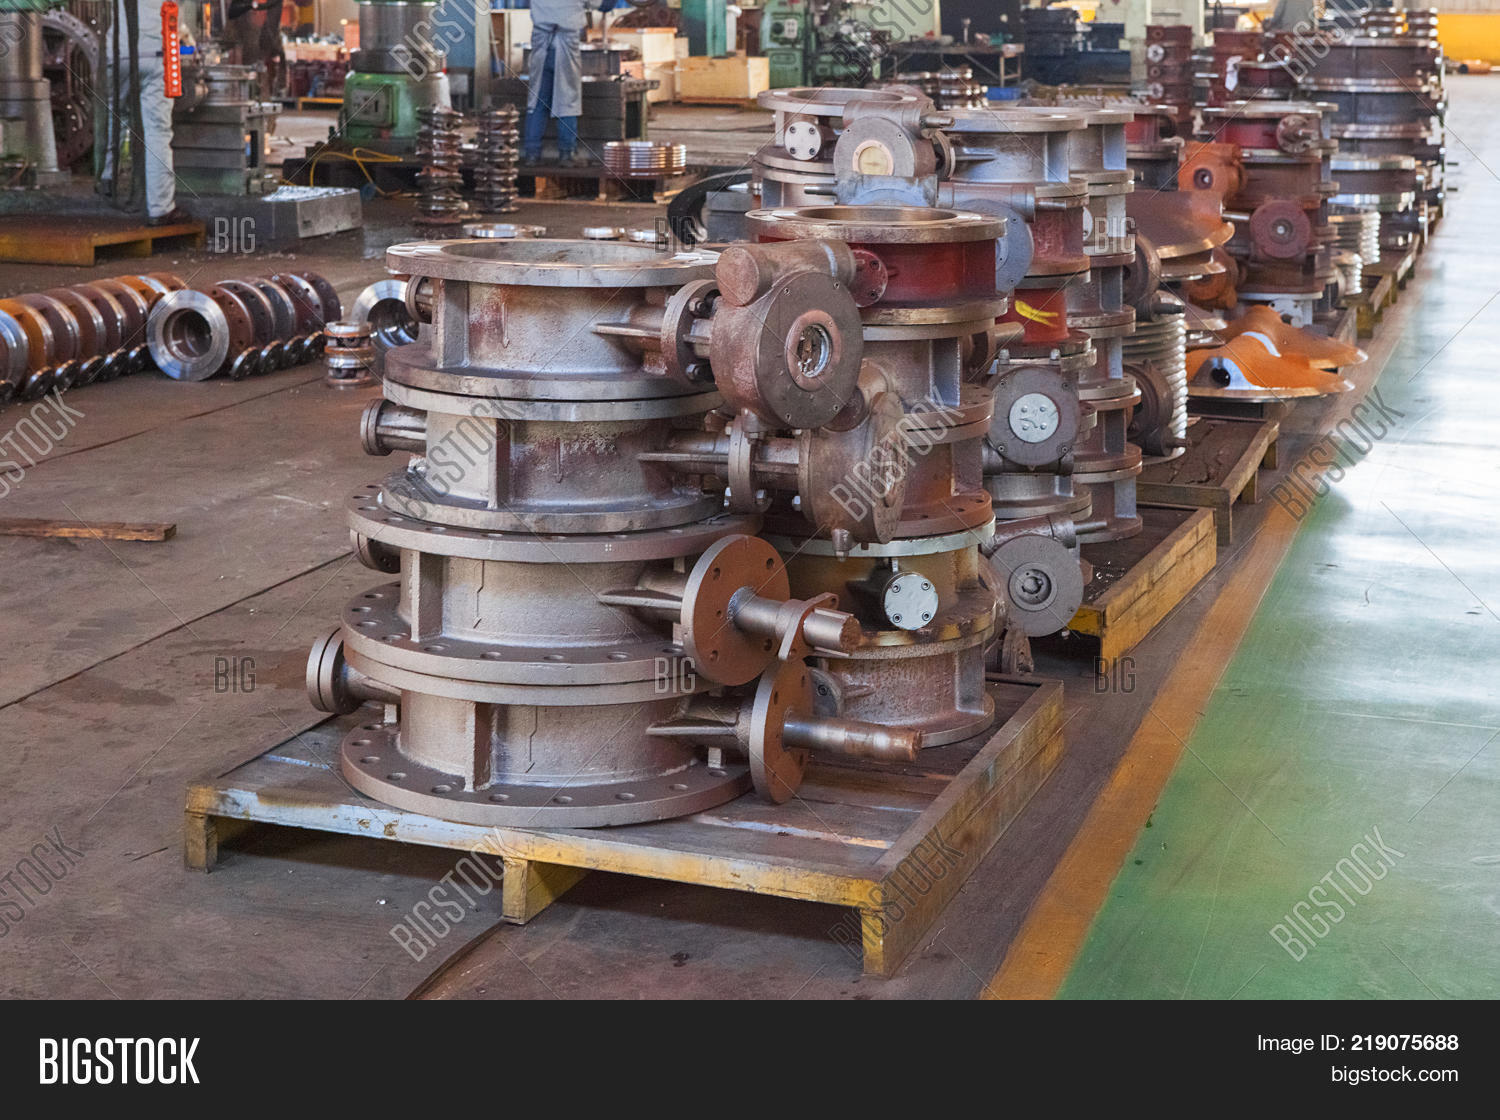 Industrial Forging Heap Valve Bodies Image Photo Free Trial Bigstock